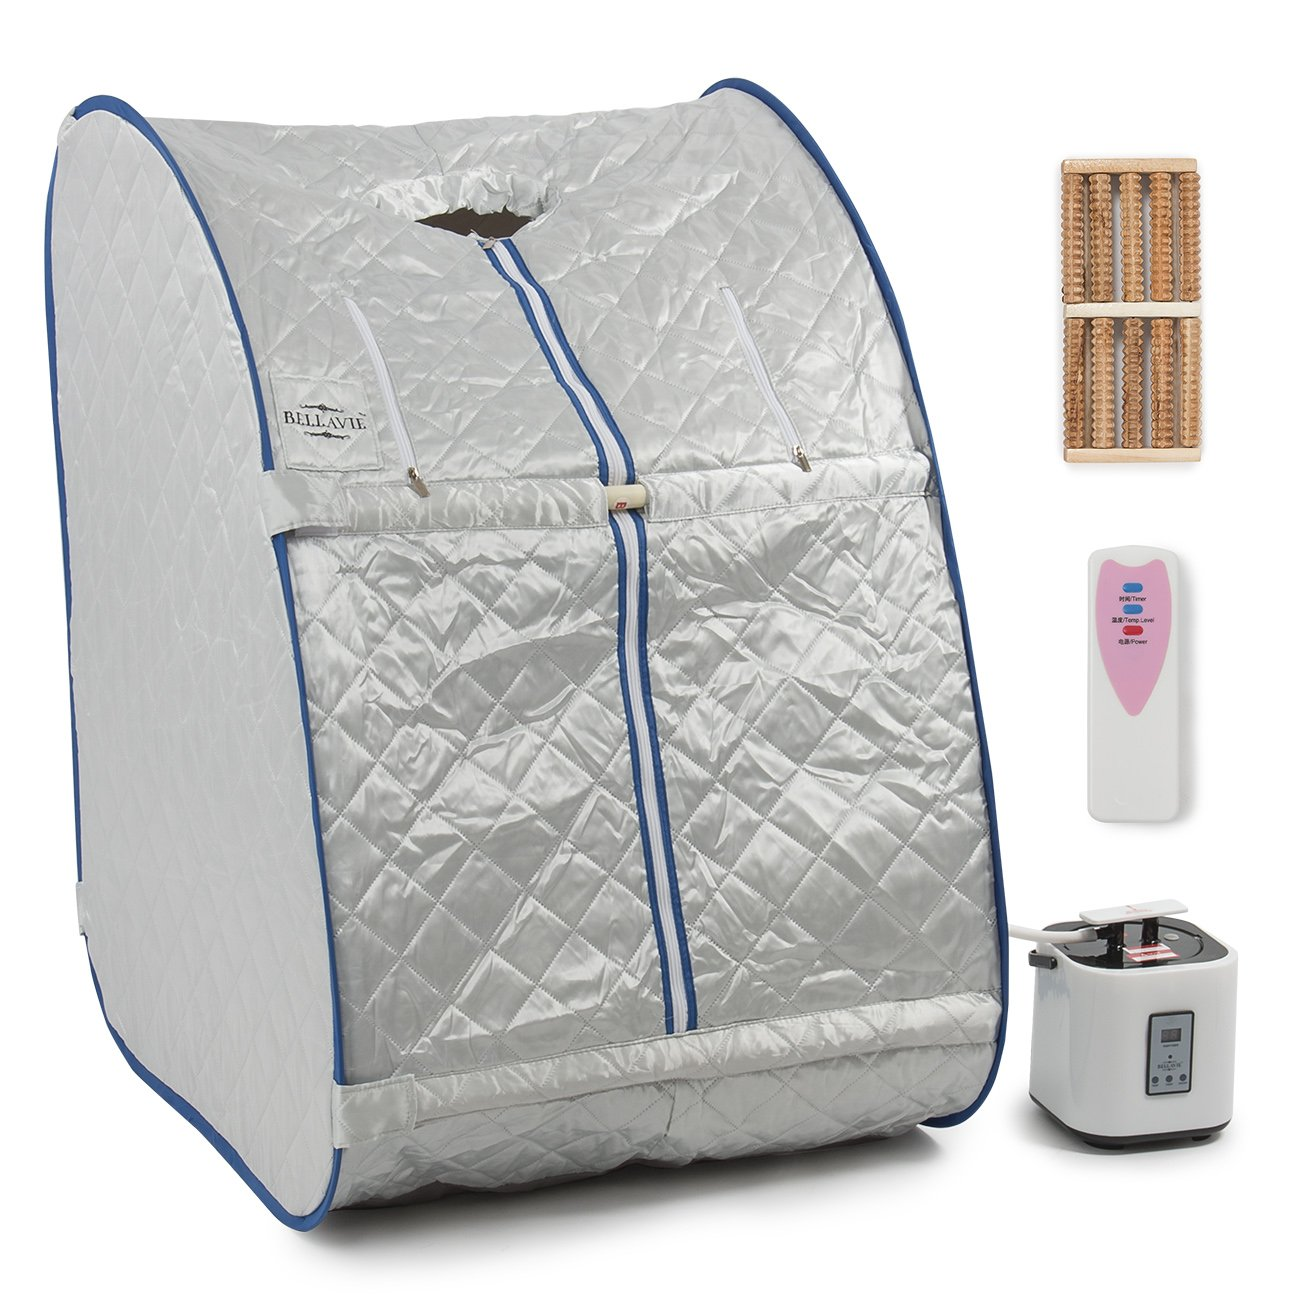 Amazon.com  Bellavie Portable Steam Sauna Pop-Up Foldable Therapeutic Personal Slimming Spa Home Indoor + Chair u0026 Remote  Garden u0026 Outdoor  sc 1 st  Amazon.com & Amazon.com : Bellavie Portable Steam Sauna Pop-Up Foldable ...